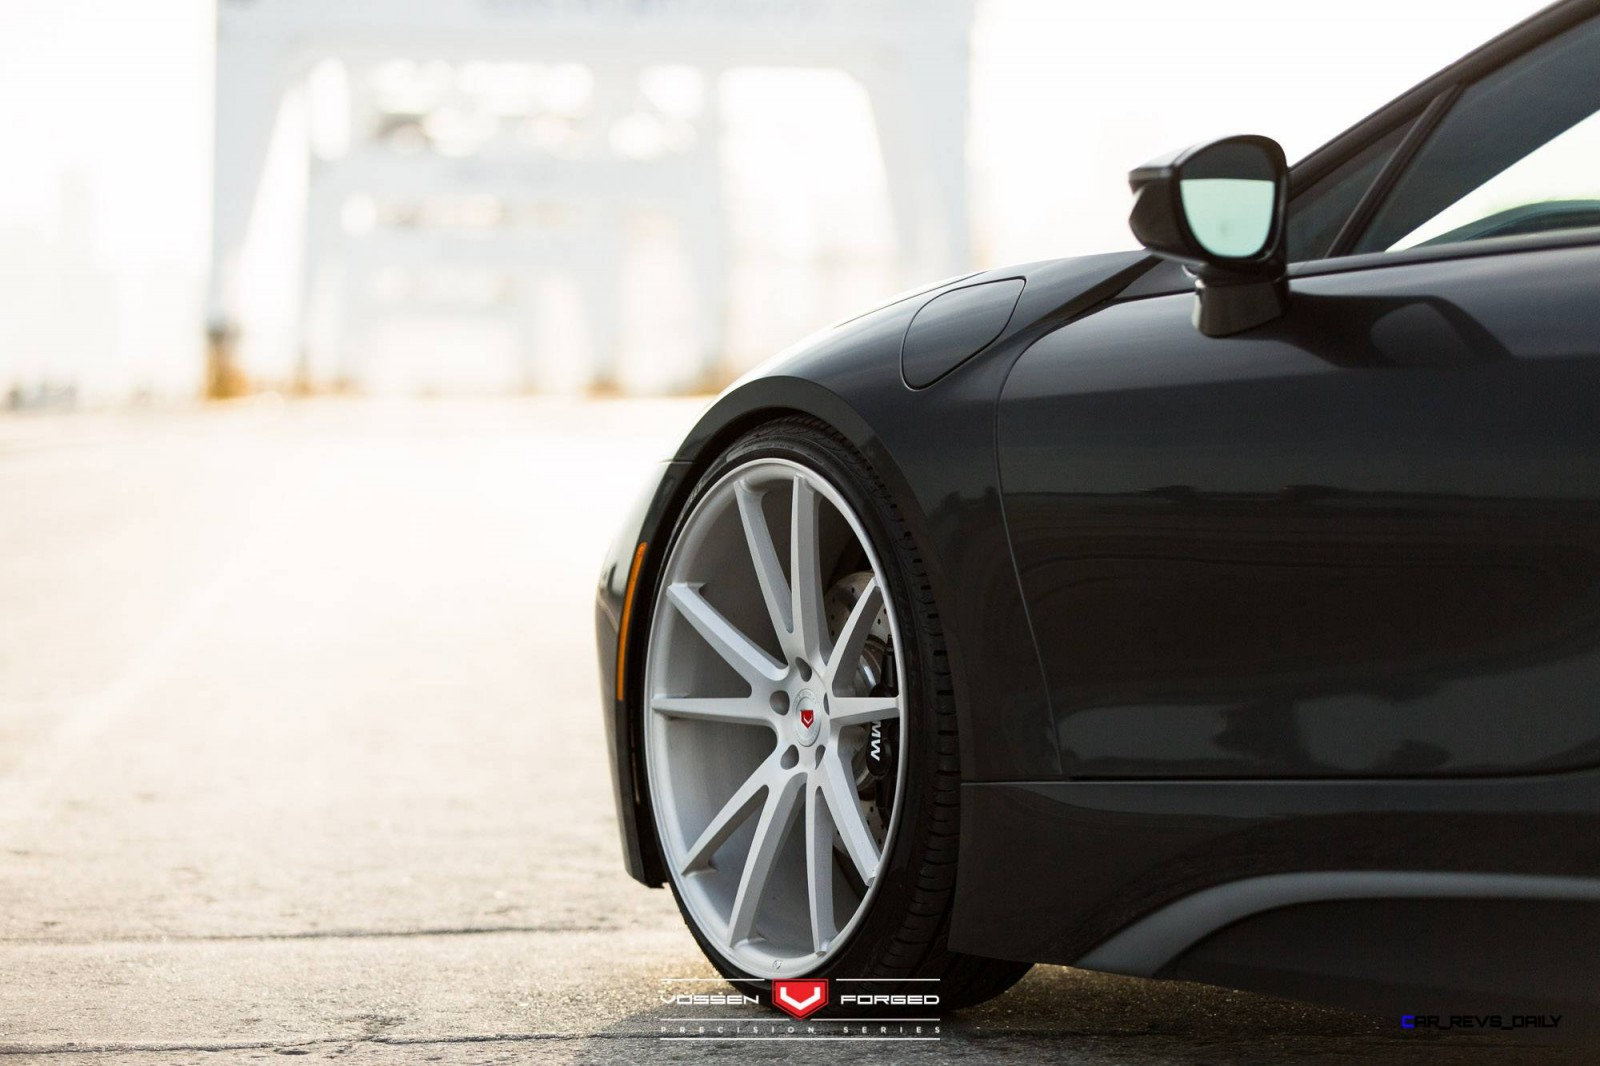 BMW i8 Duo - Vossen Forged Precision Series - ©_17618187133_o